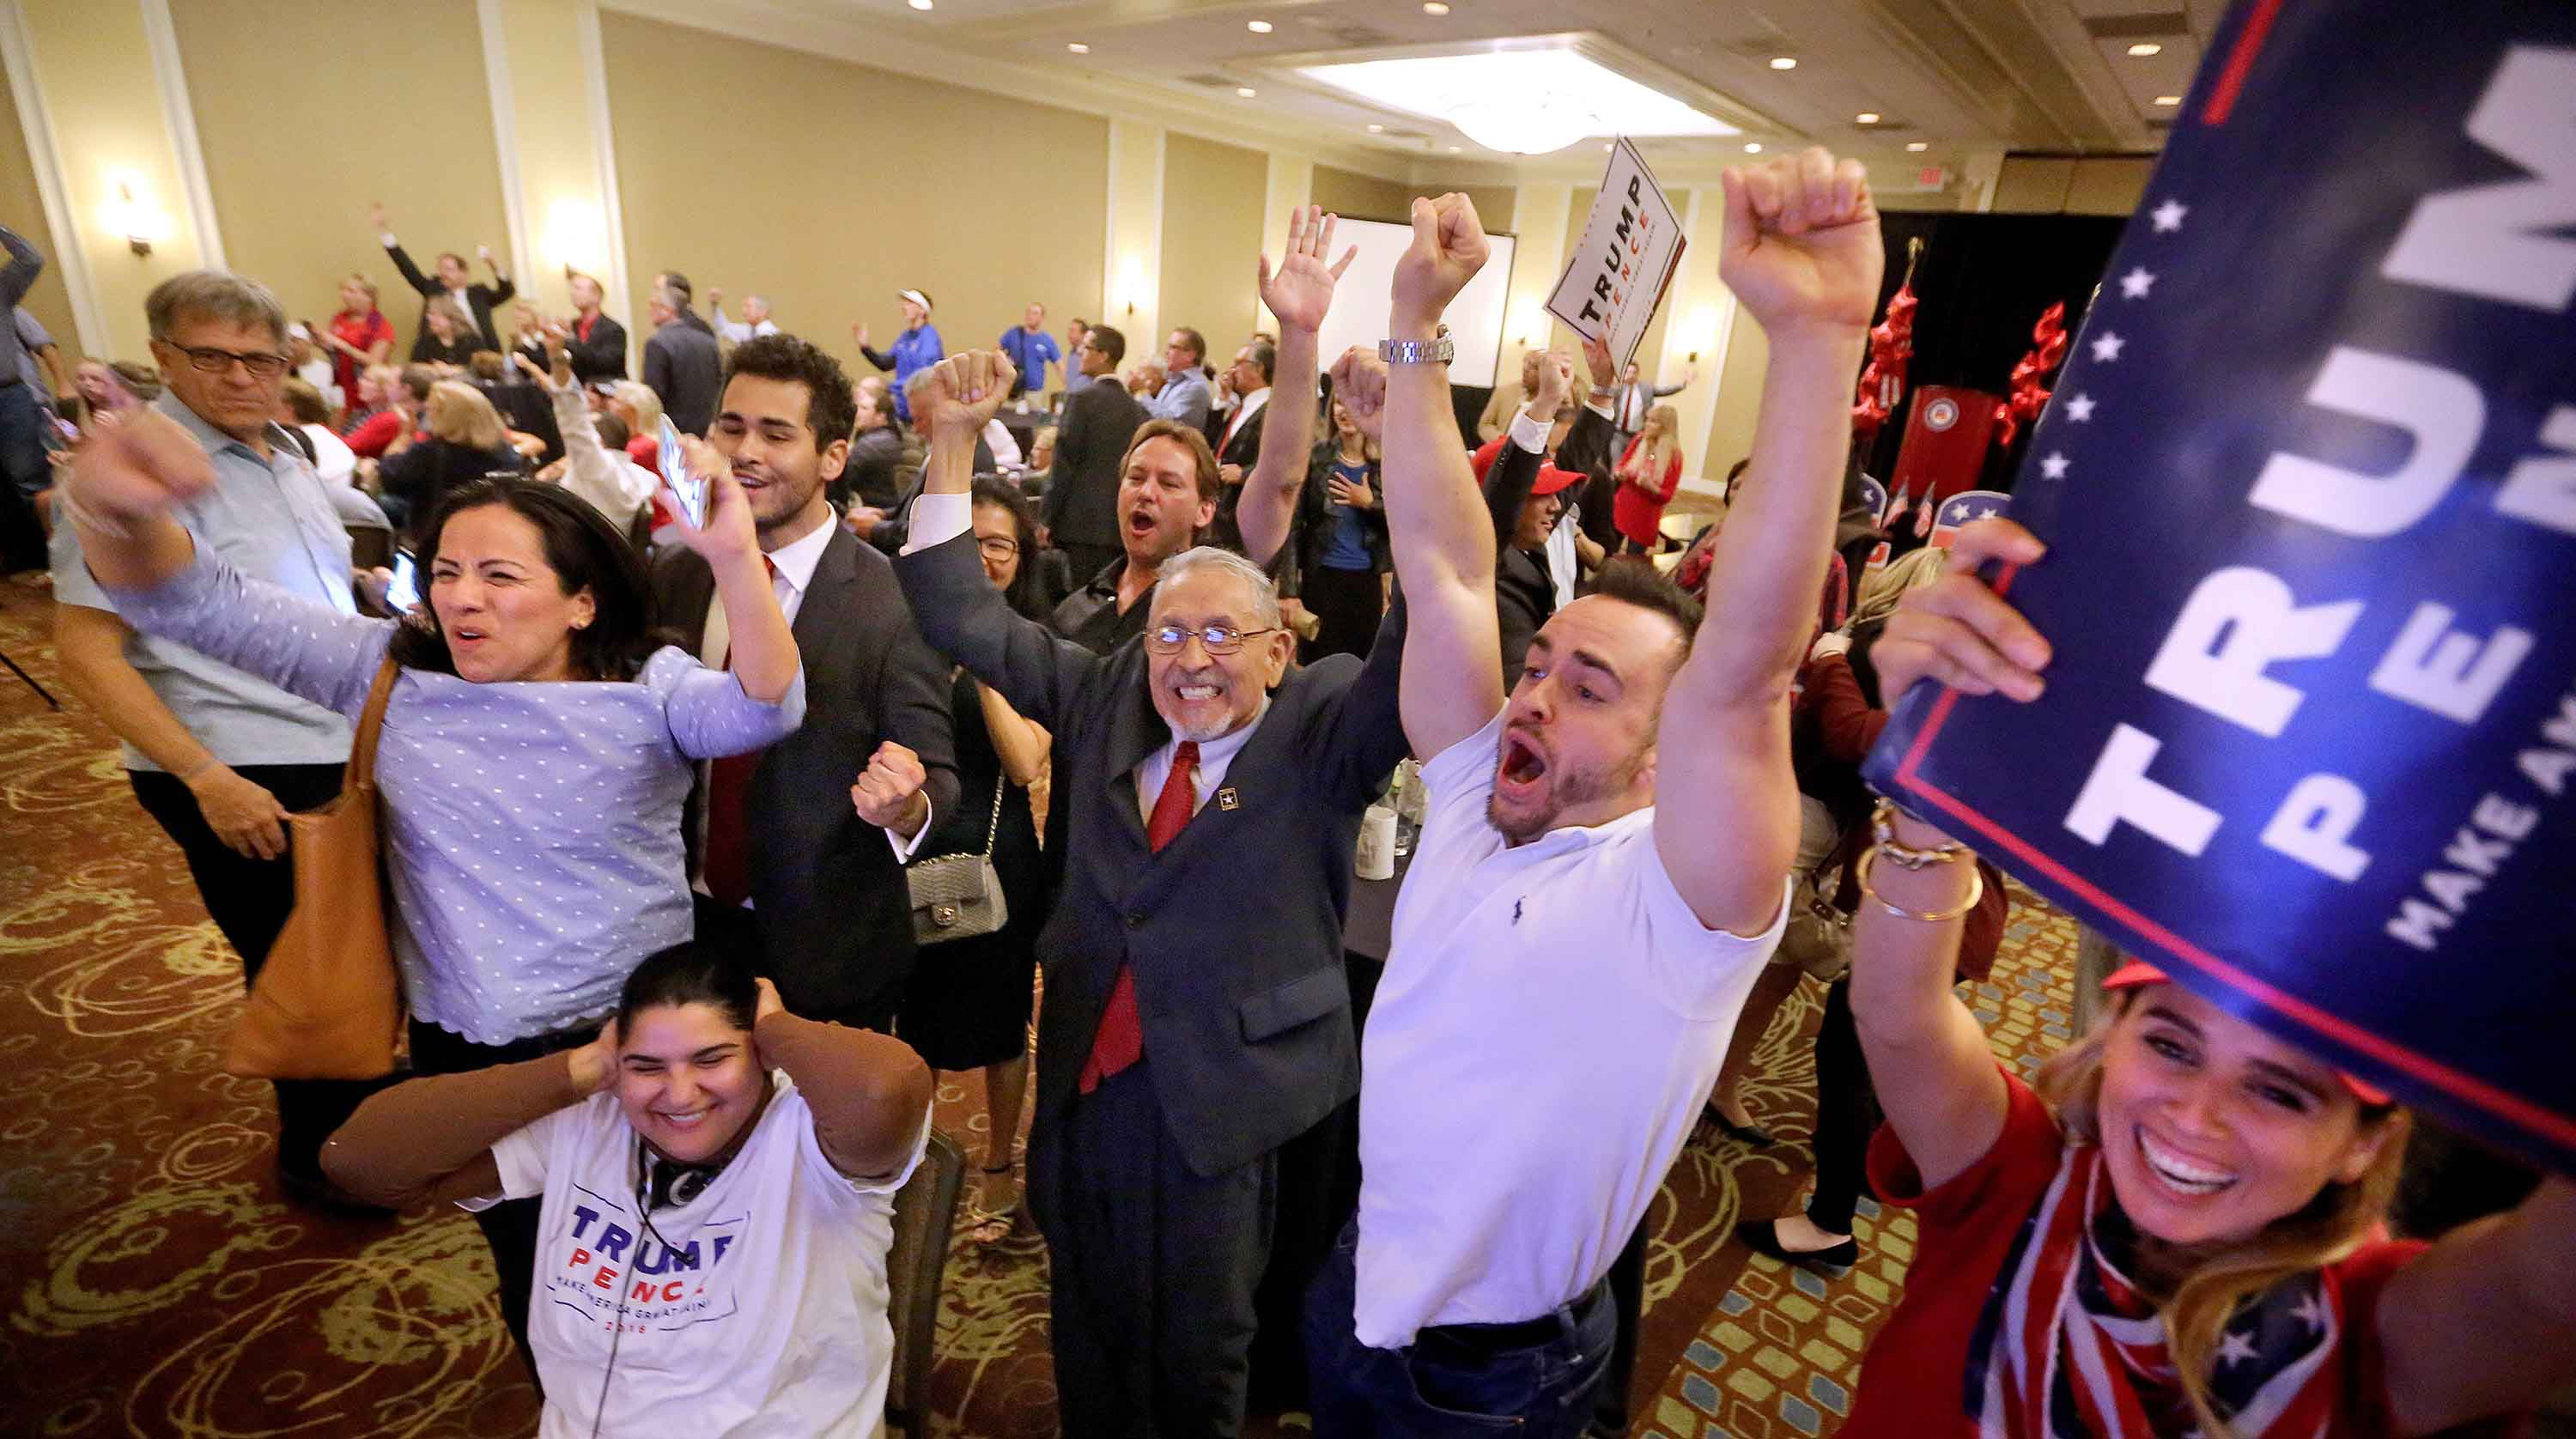 Donald Trump supporters react as Fox News predicted Trump will win North Carolina at the Republican Party of Seminole County, Fla. (Joe Burbank/Orlando Sentinel/TNS)